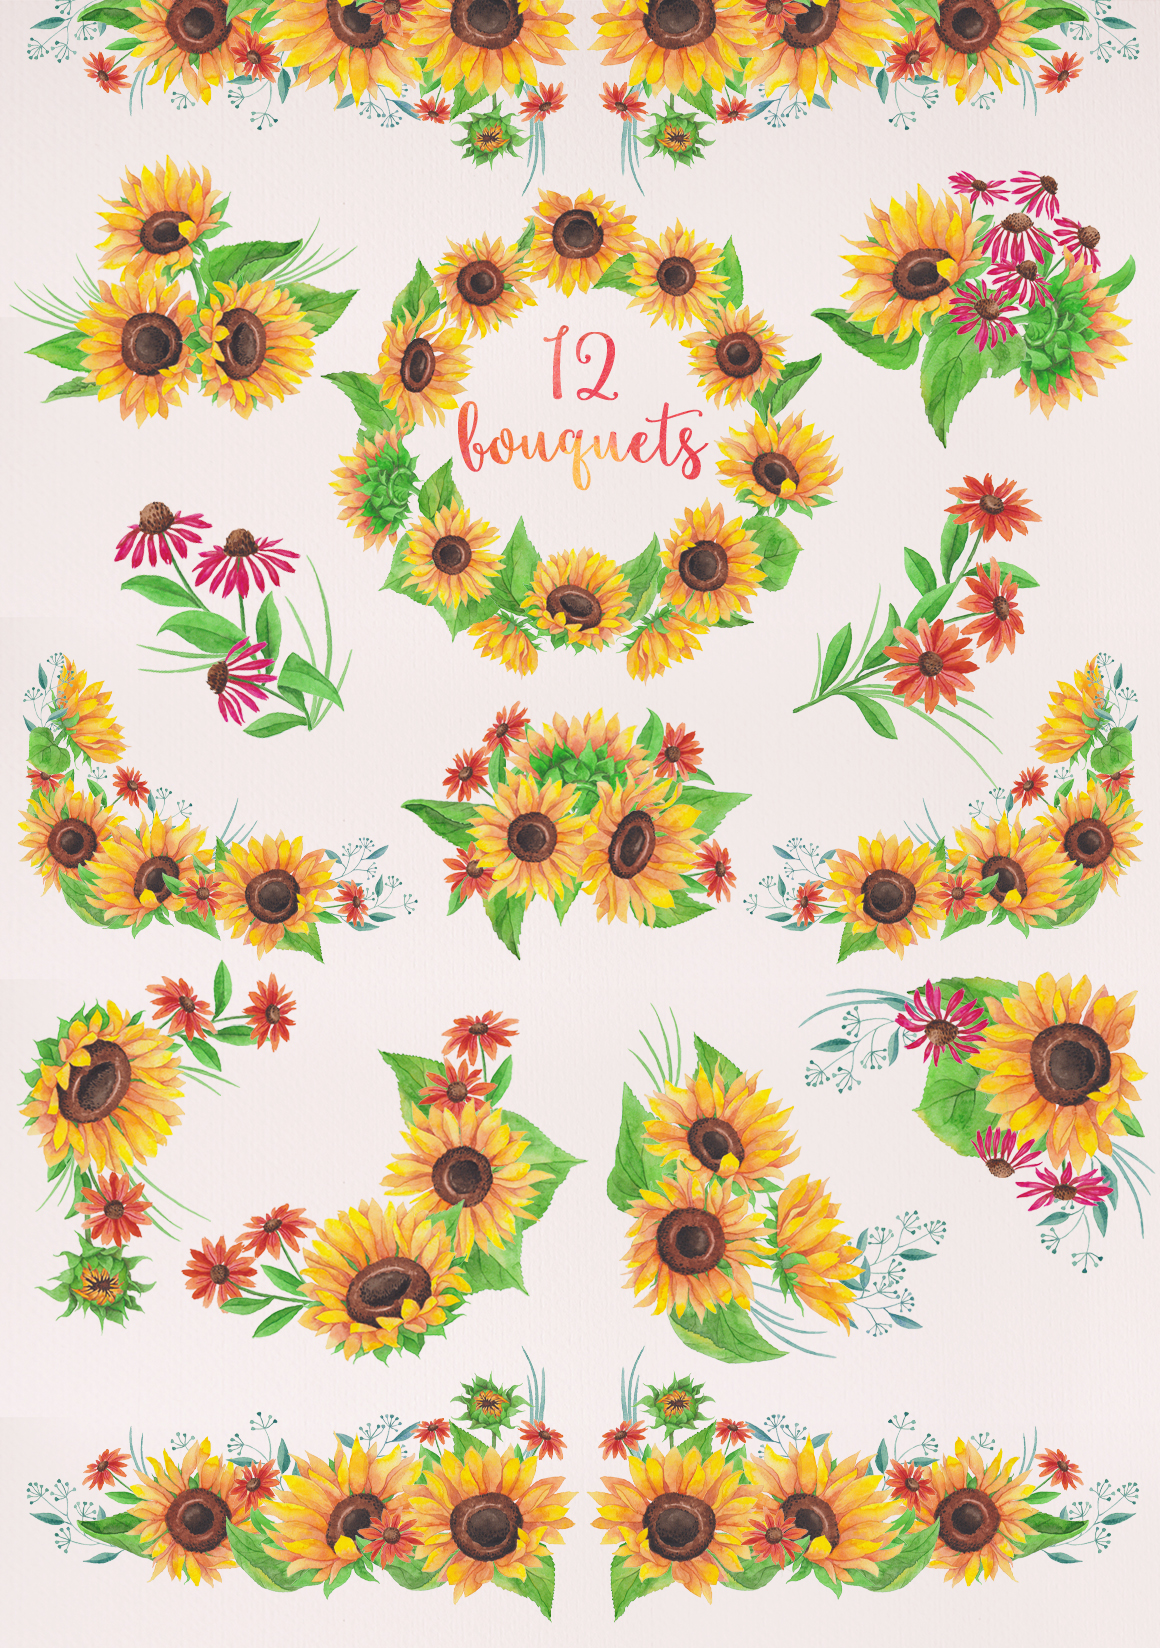 watercolor sunflowers illustrations